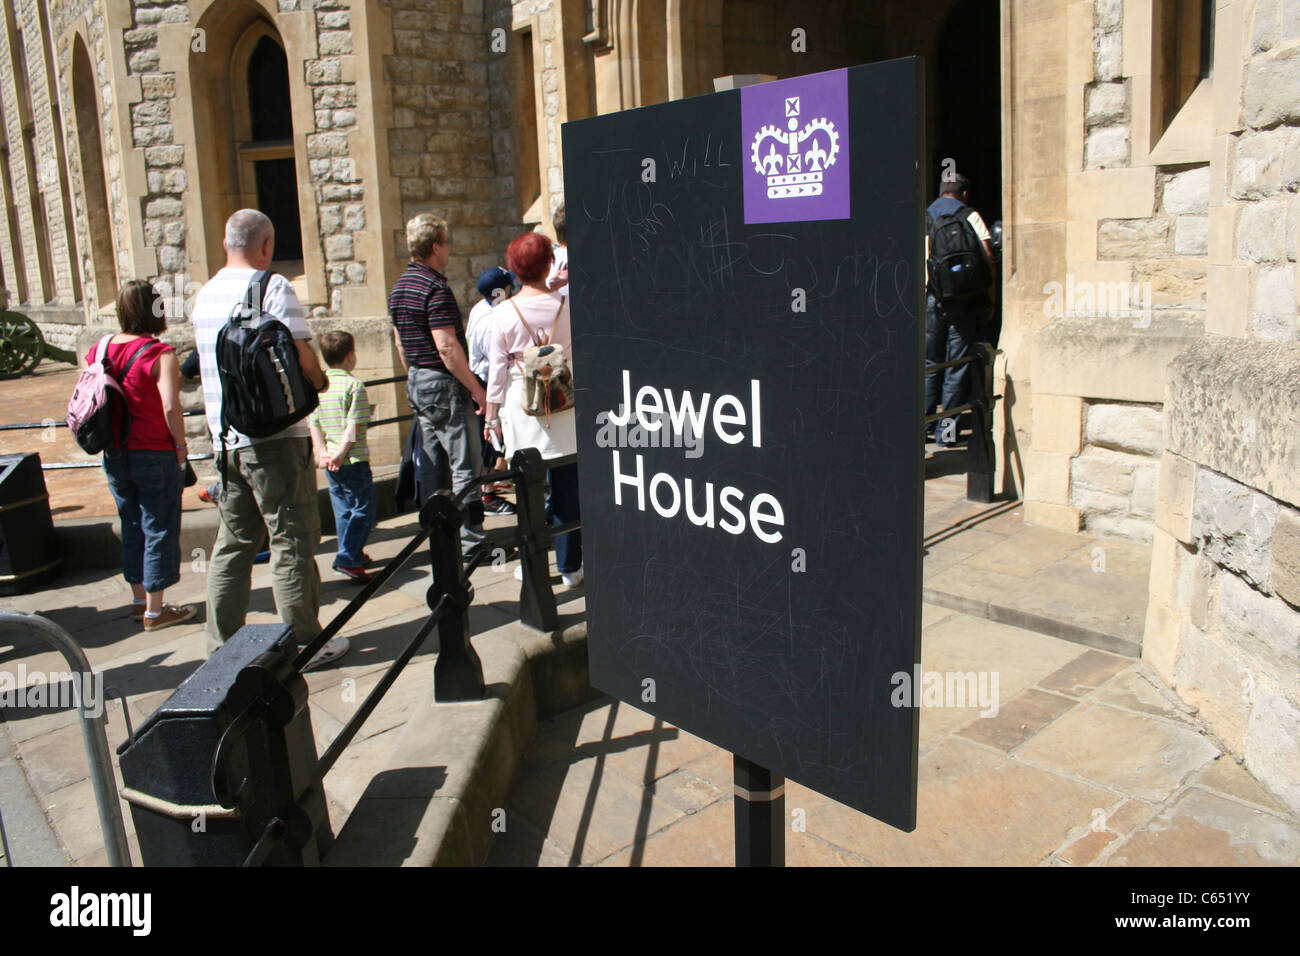 TOWER OF LONDON JEWEL HOUSE - Stock Image